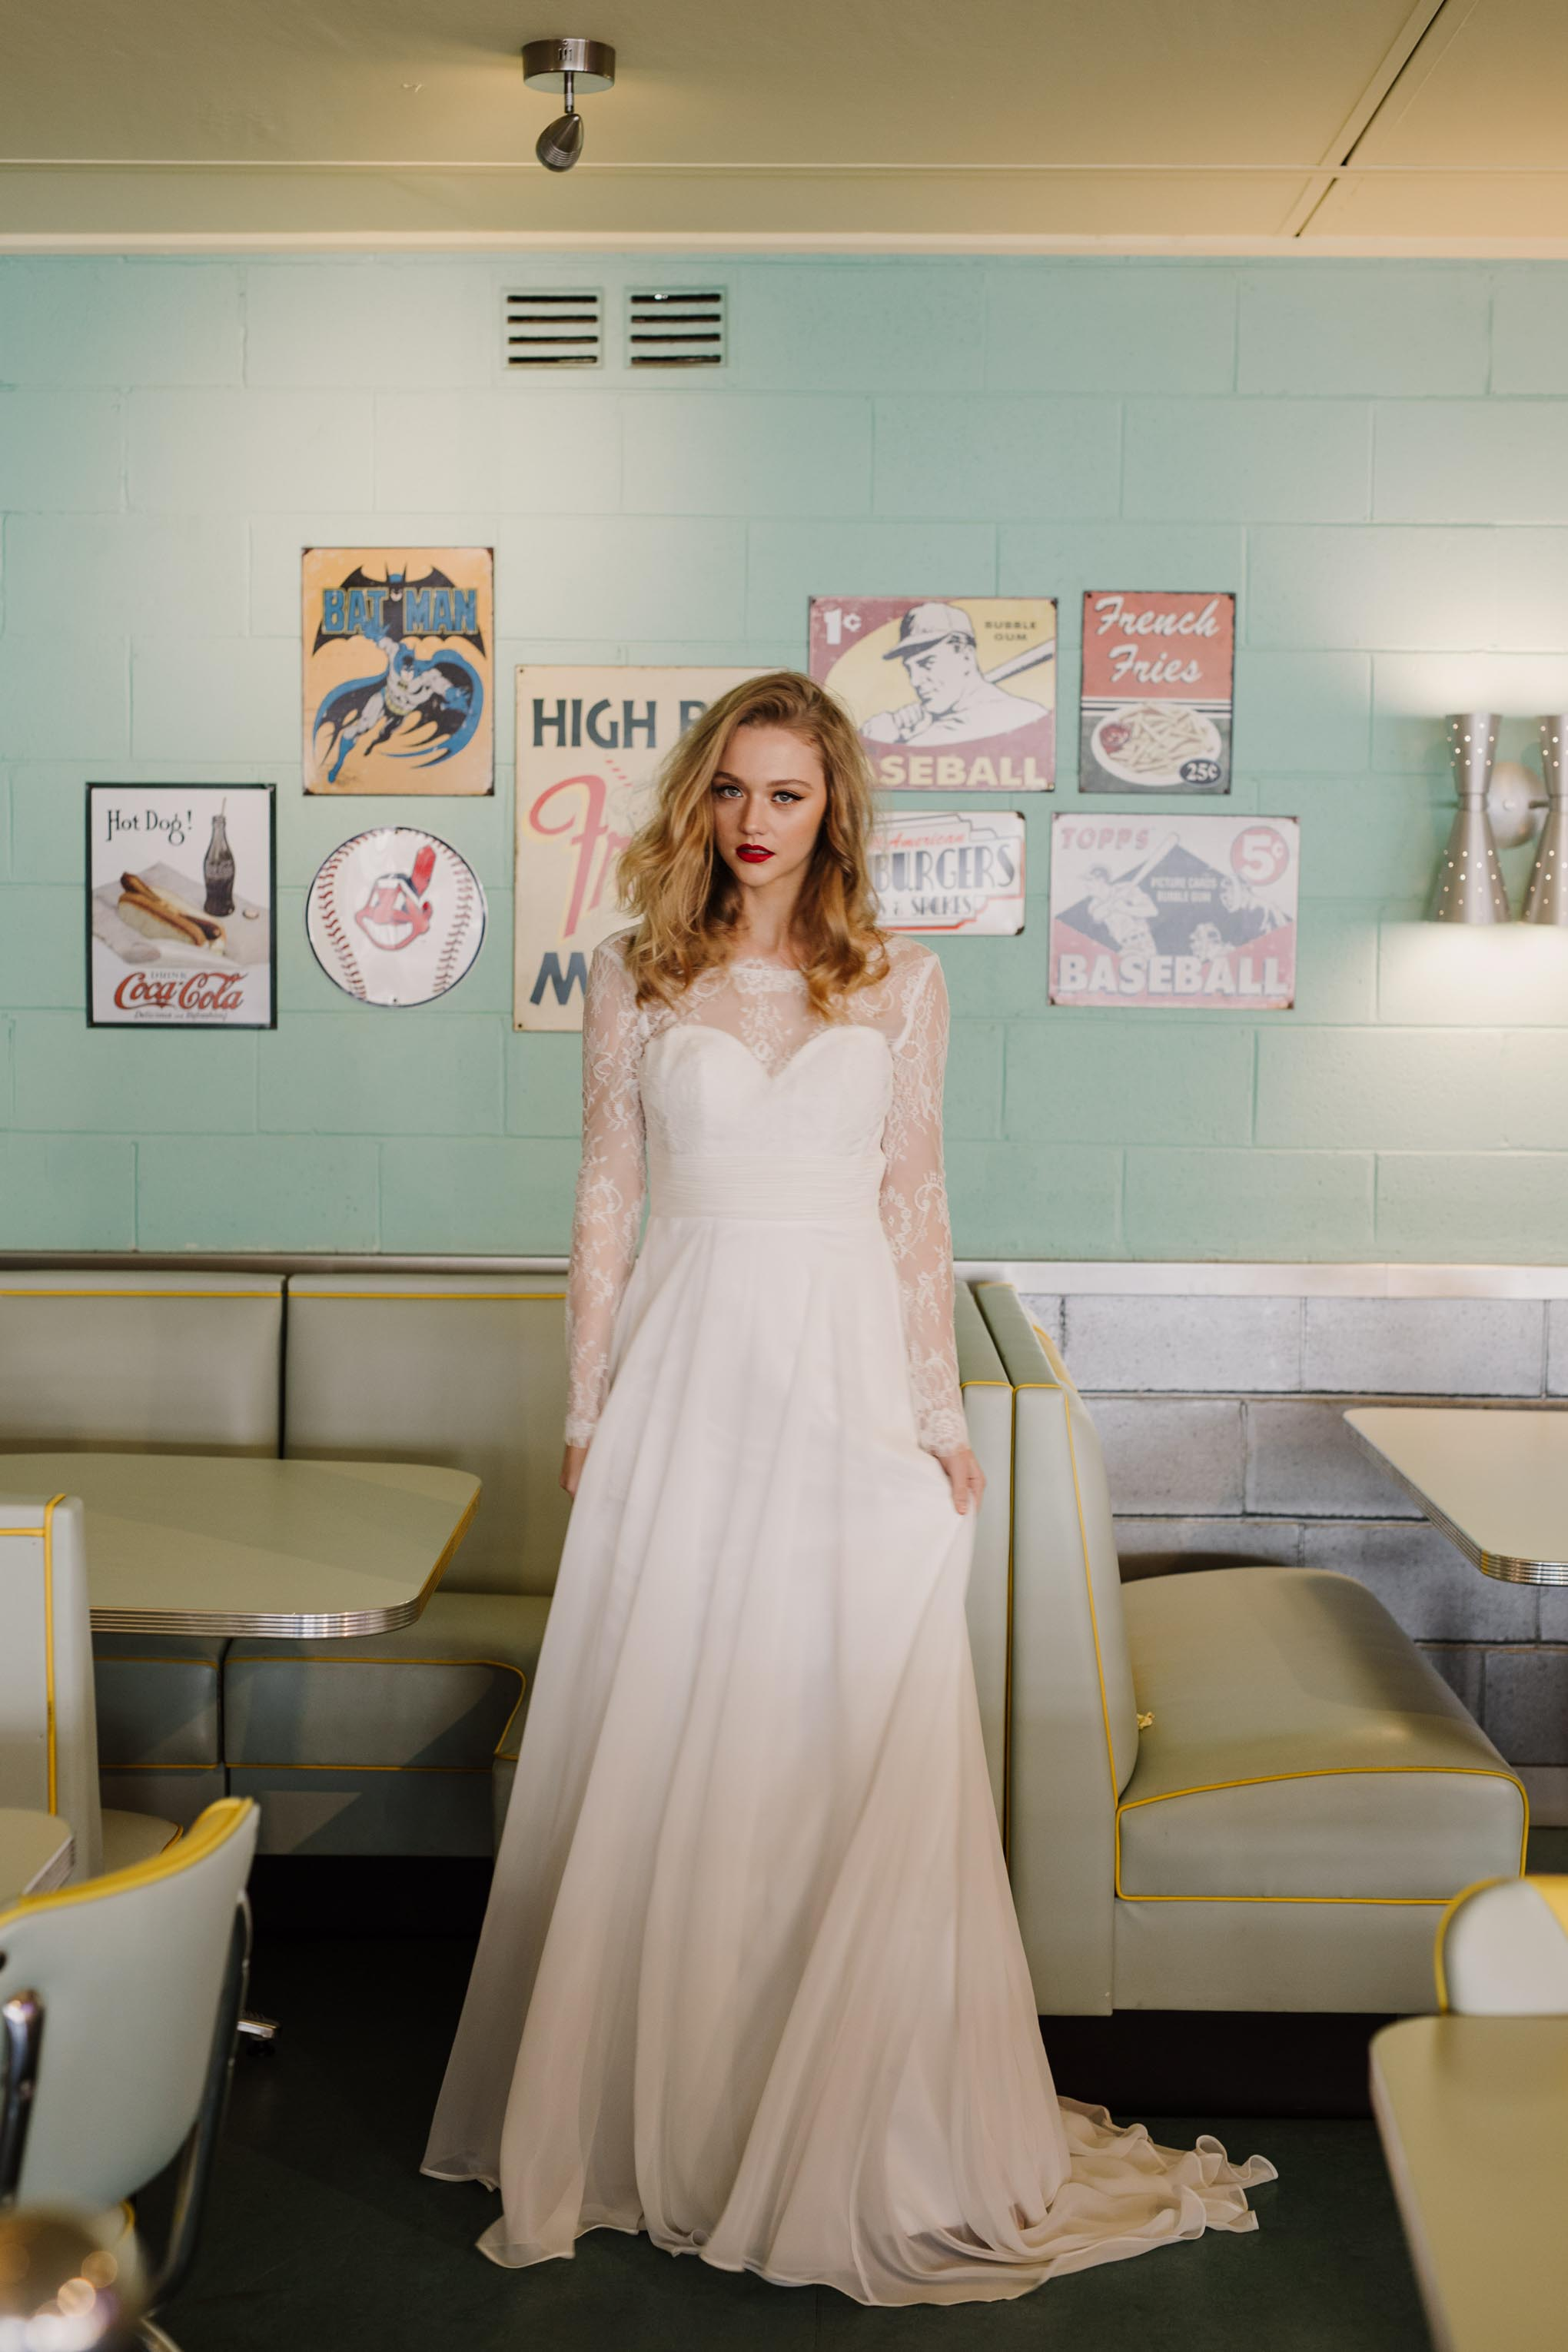 Categories: Inspiration-Daisy Brides Trunk Show - Mount Maunganui 2018